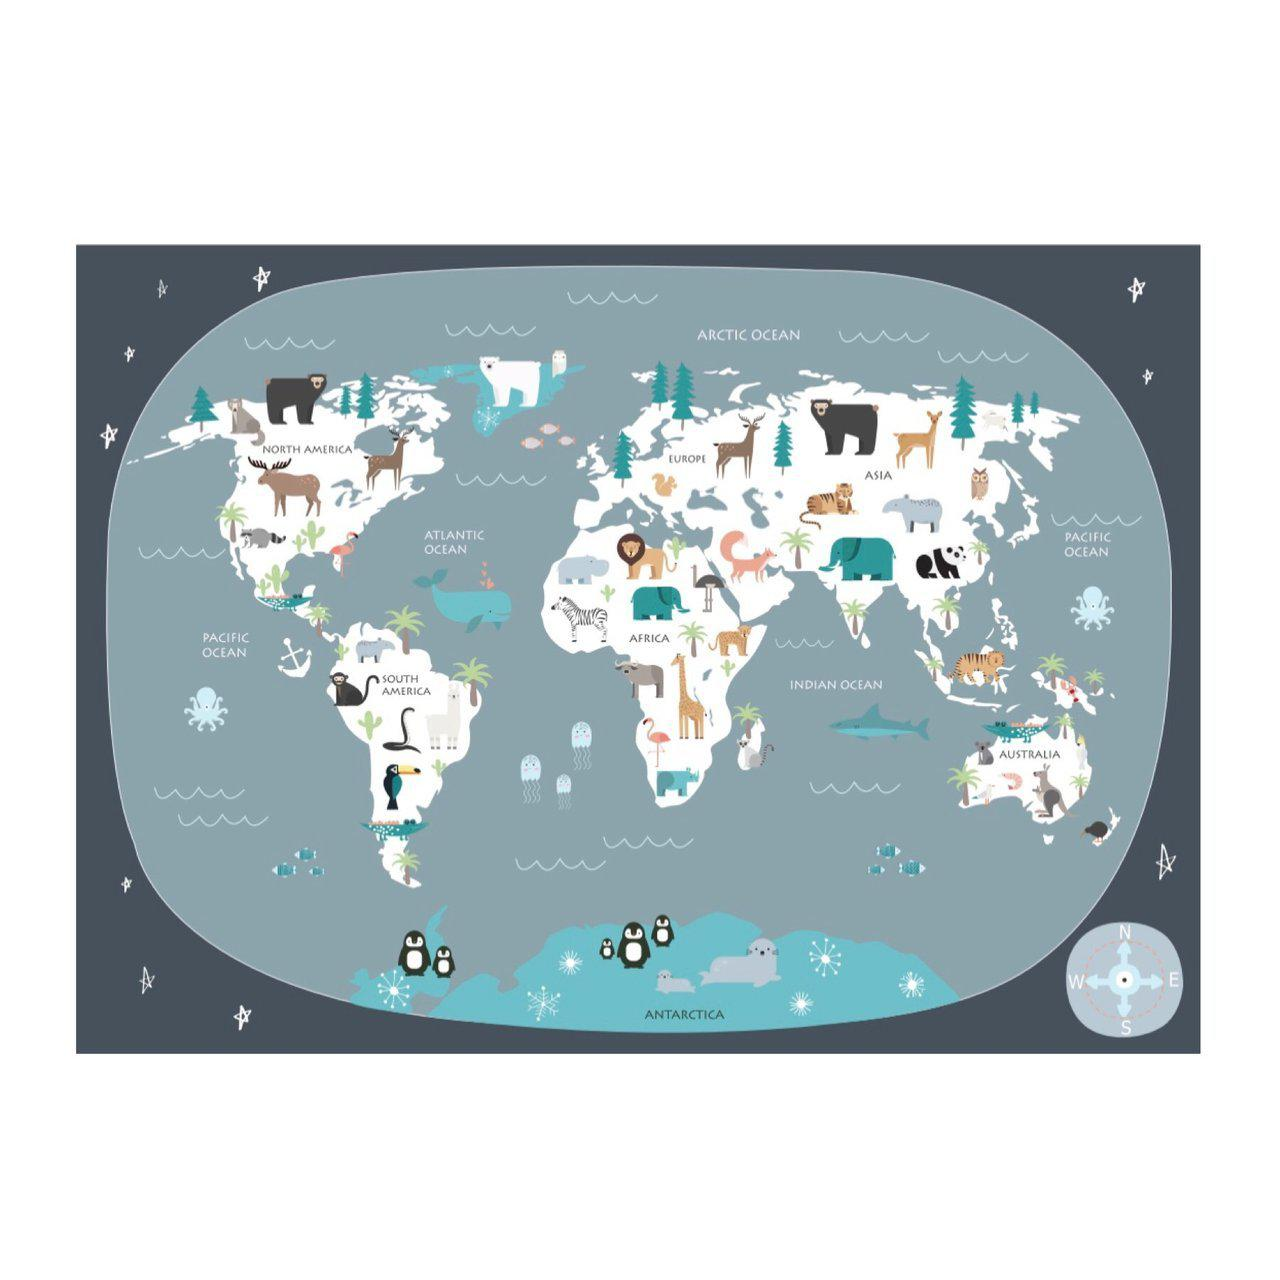 Wondermade - Kids World Map Wall Decal - Dark Grey - BabyDonkie on world map wall set, world map of the wall, india wall sticker, world vinyl art decals, world wall decal, world map wall graphics, world map on wall, world wall sculpture, calendar wall sticker, world maps for your wall, world map wall vinyl, world map removable sticker, world map wall paint, world watch urban outfitters, compass wall sticker, world map wall canvas, world map wall covering, world map wall decoration, paris eiffel tower wall sticker, world map wall mural,